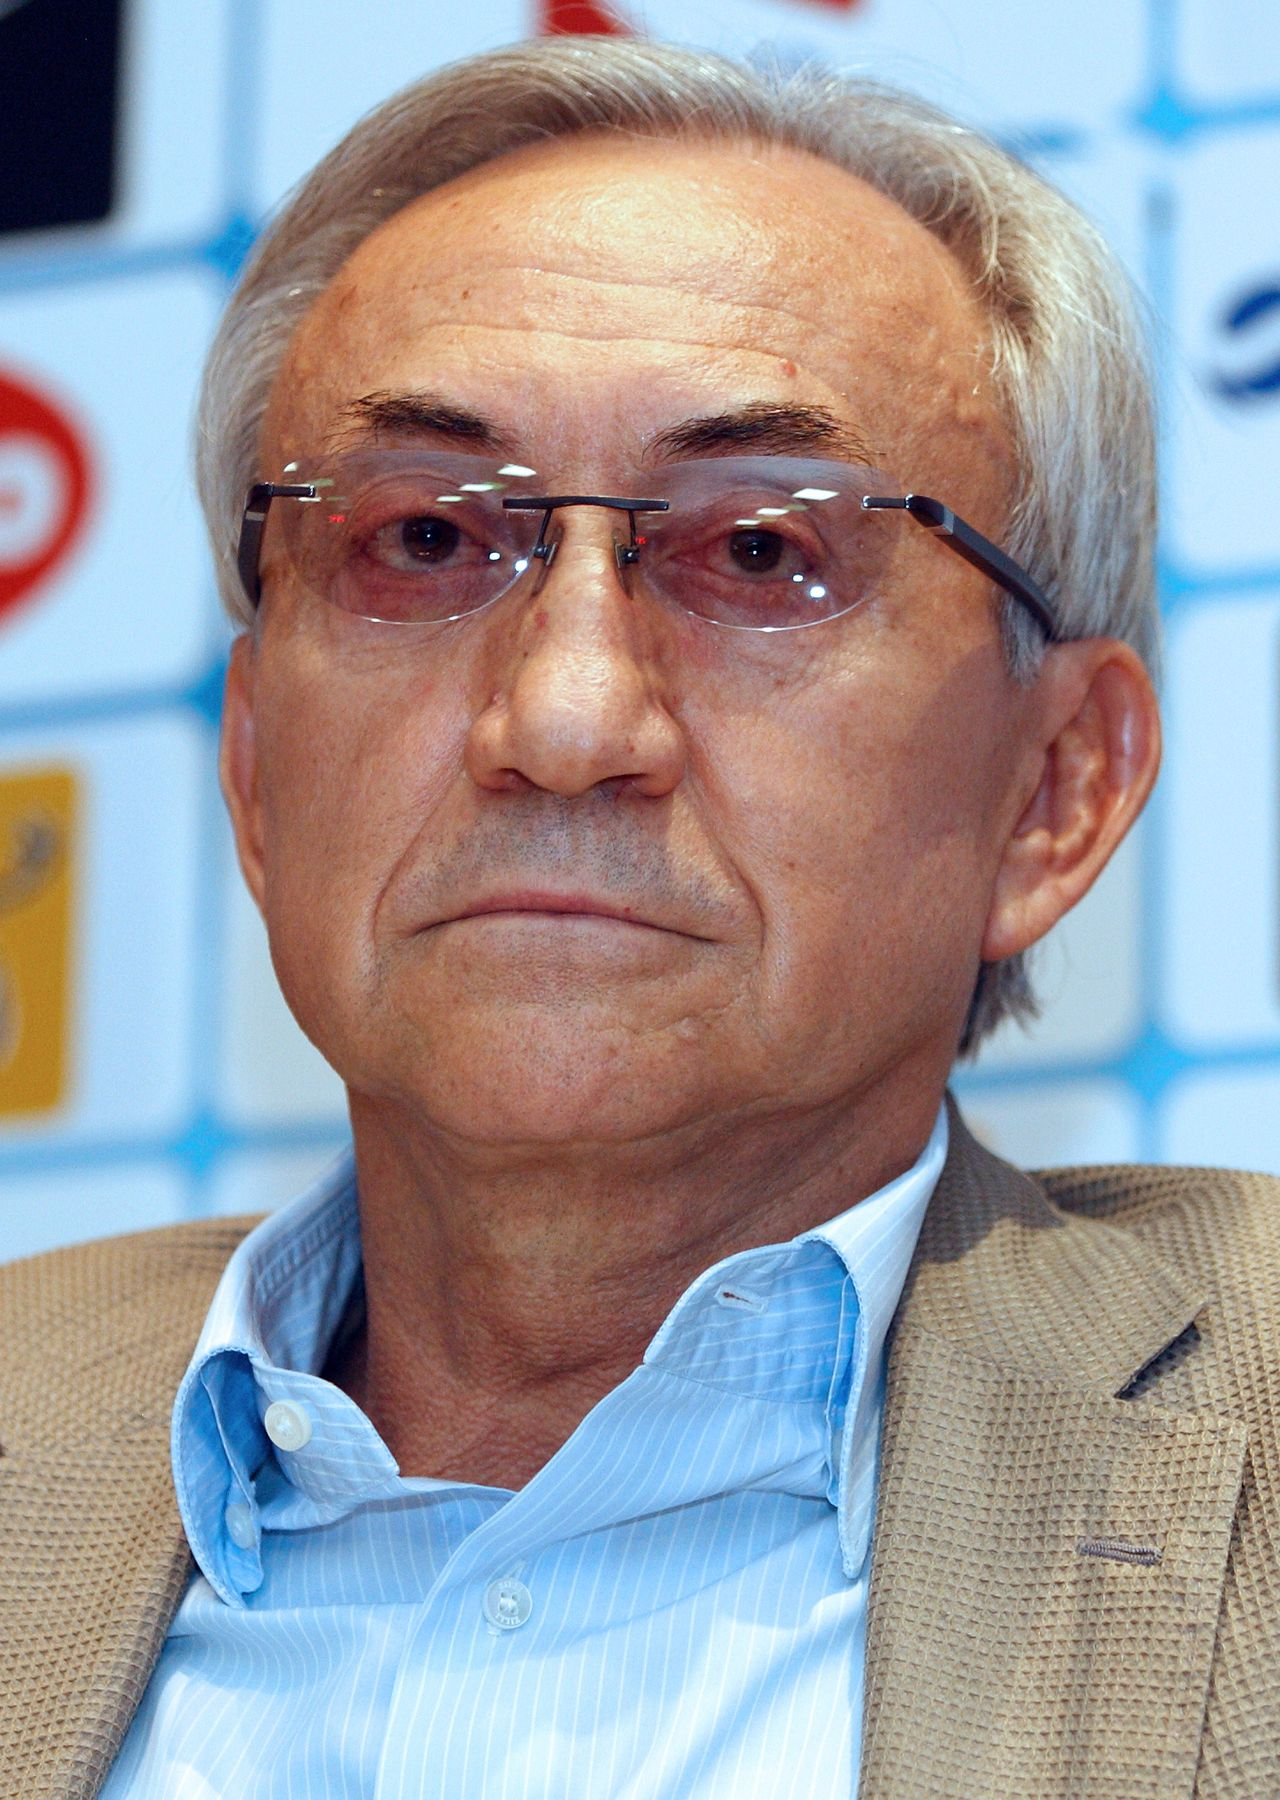 A photo taken on September 10, 2012 shows one of Serbia's richest men, businessman Miroslav Miskovic, attending a press conference in Belgrade. Miskovic and eight other people, including his son, were arrested on December 12 under suspicion of being involved in corruption, police said. Miskovic, one of the most influential businessmen in the Balkans, is suspected of illegally gaining more than 30 million euros (39 million US dollars) during the privatization of several state-run companies engaged in road construction business. AFP PHOTO / MARKO METLAS - SERBIA OUT -